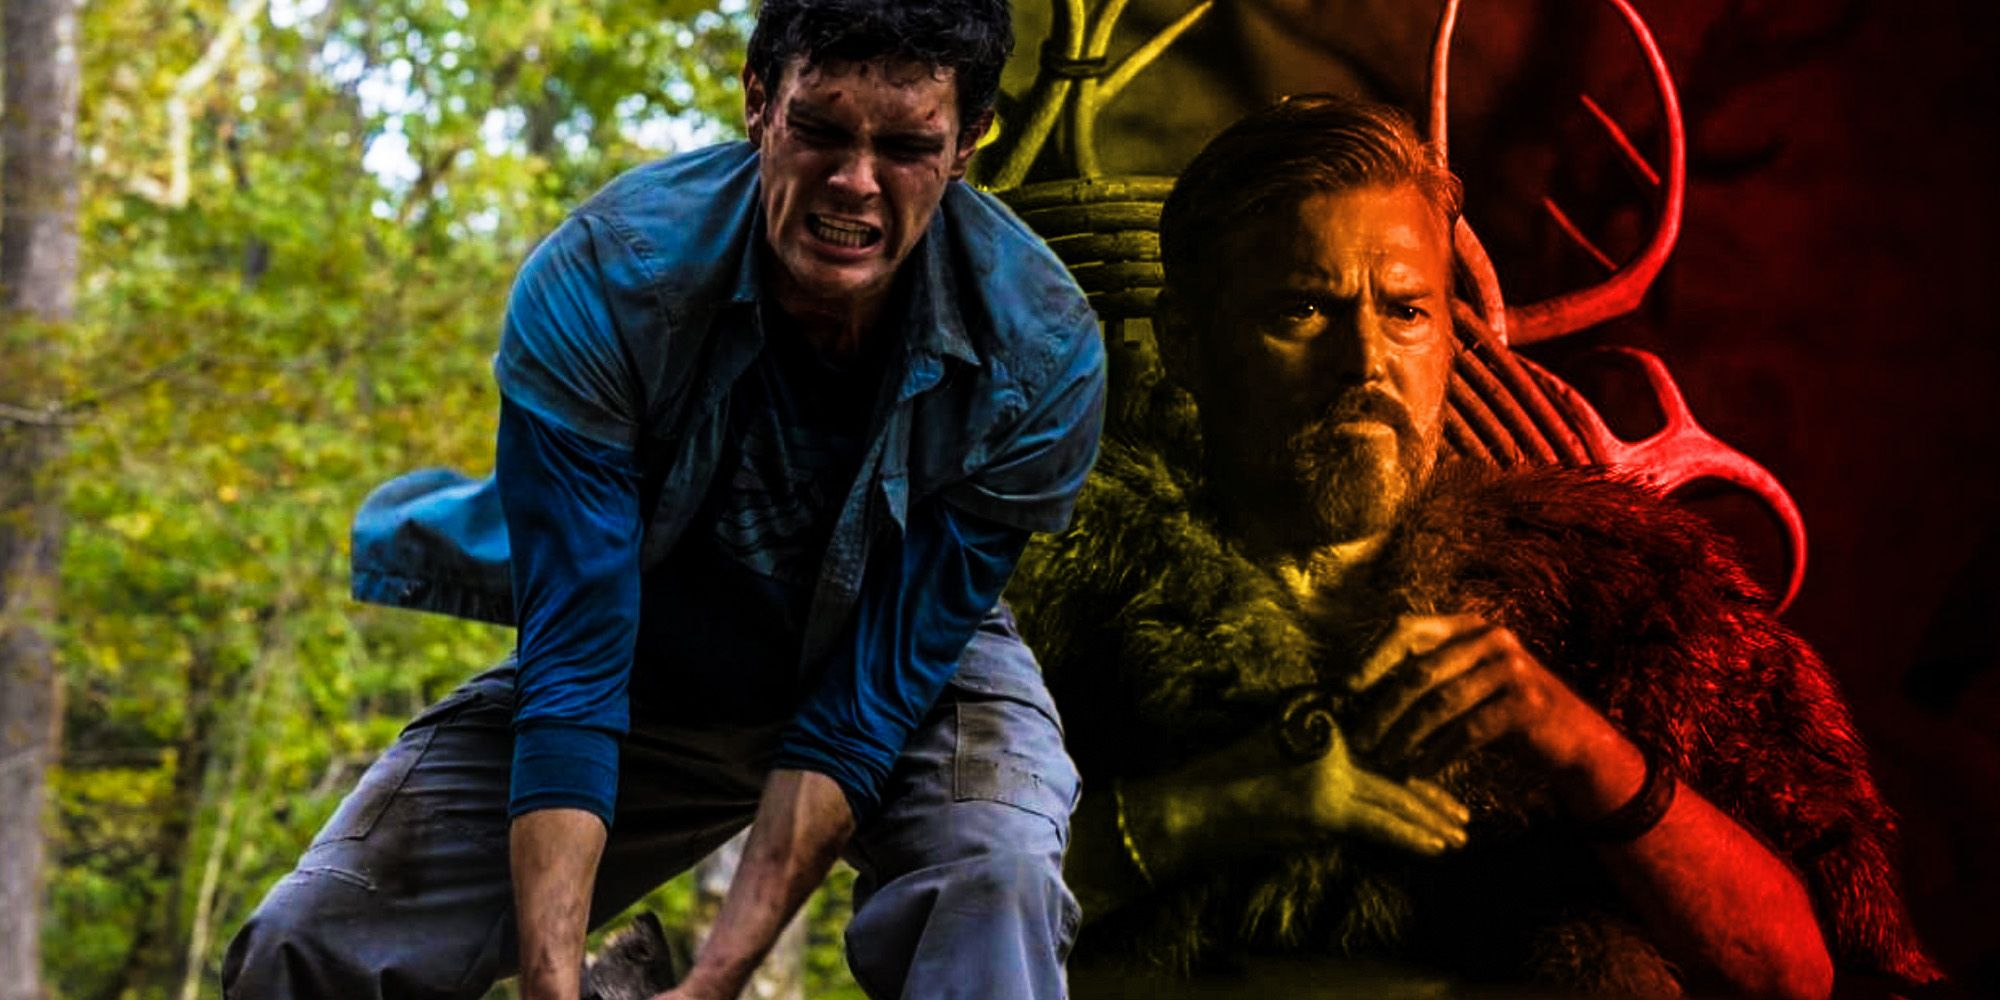 The Scene That Almost Earned Wrong Turn 2021 An NC-17 Rating